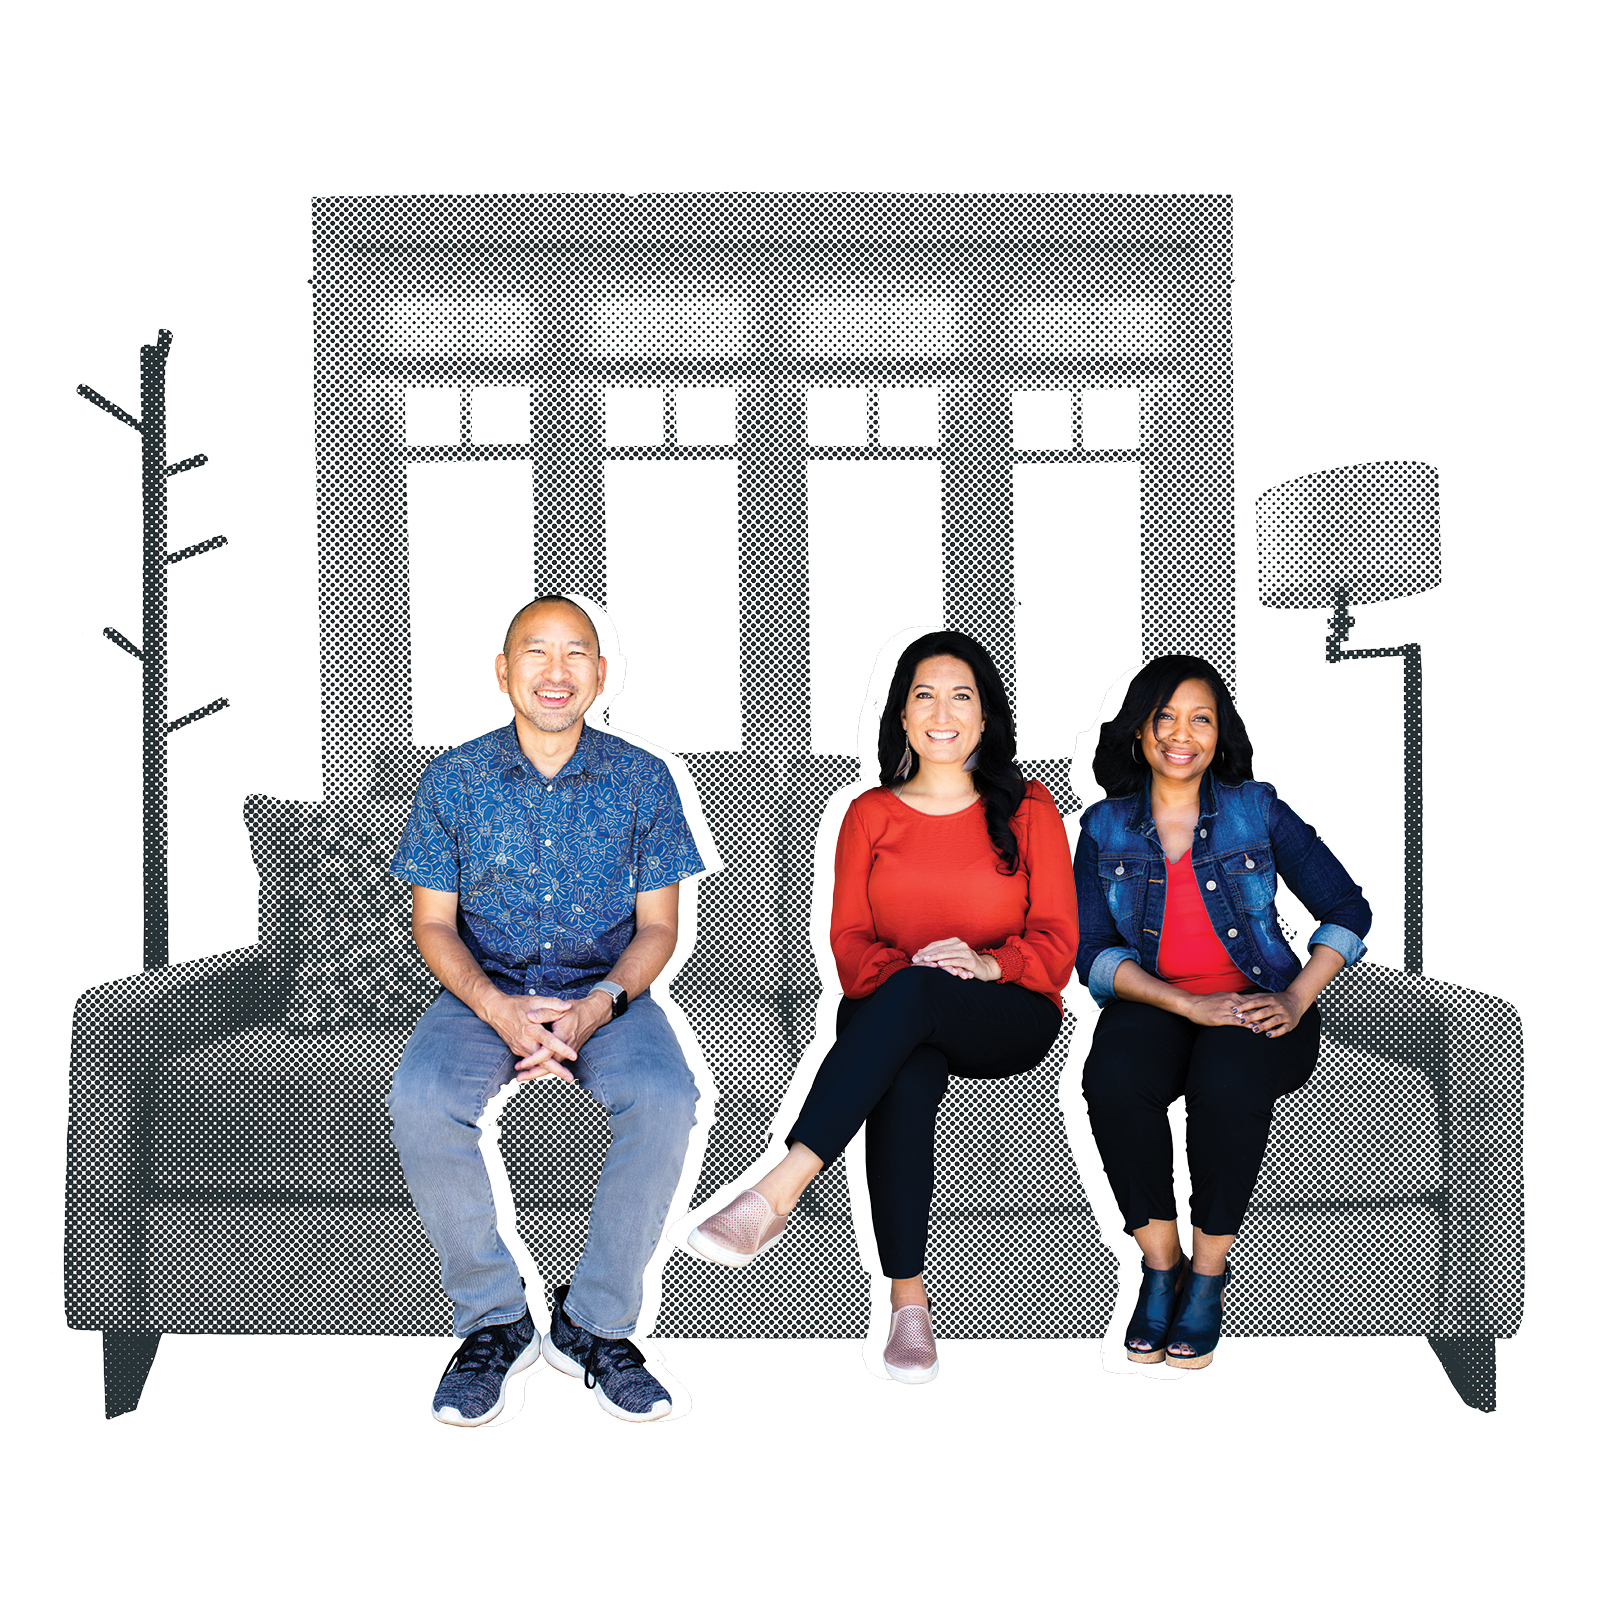 fuller chaplains on a couch illustration